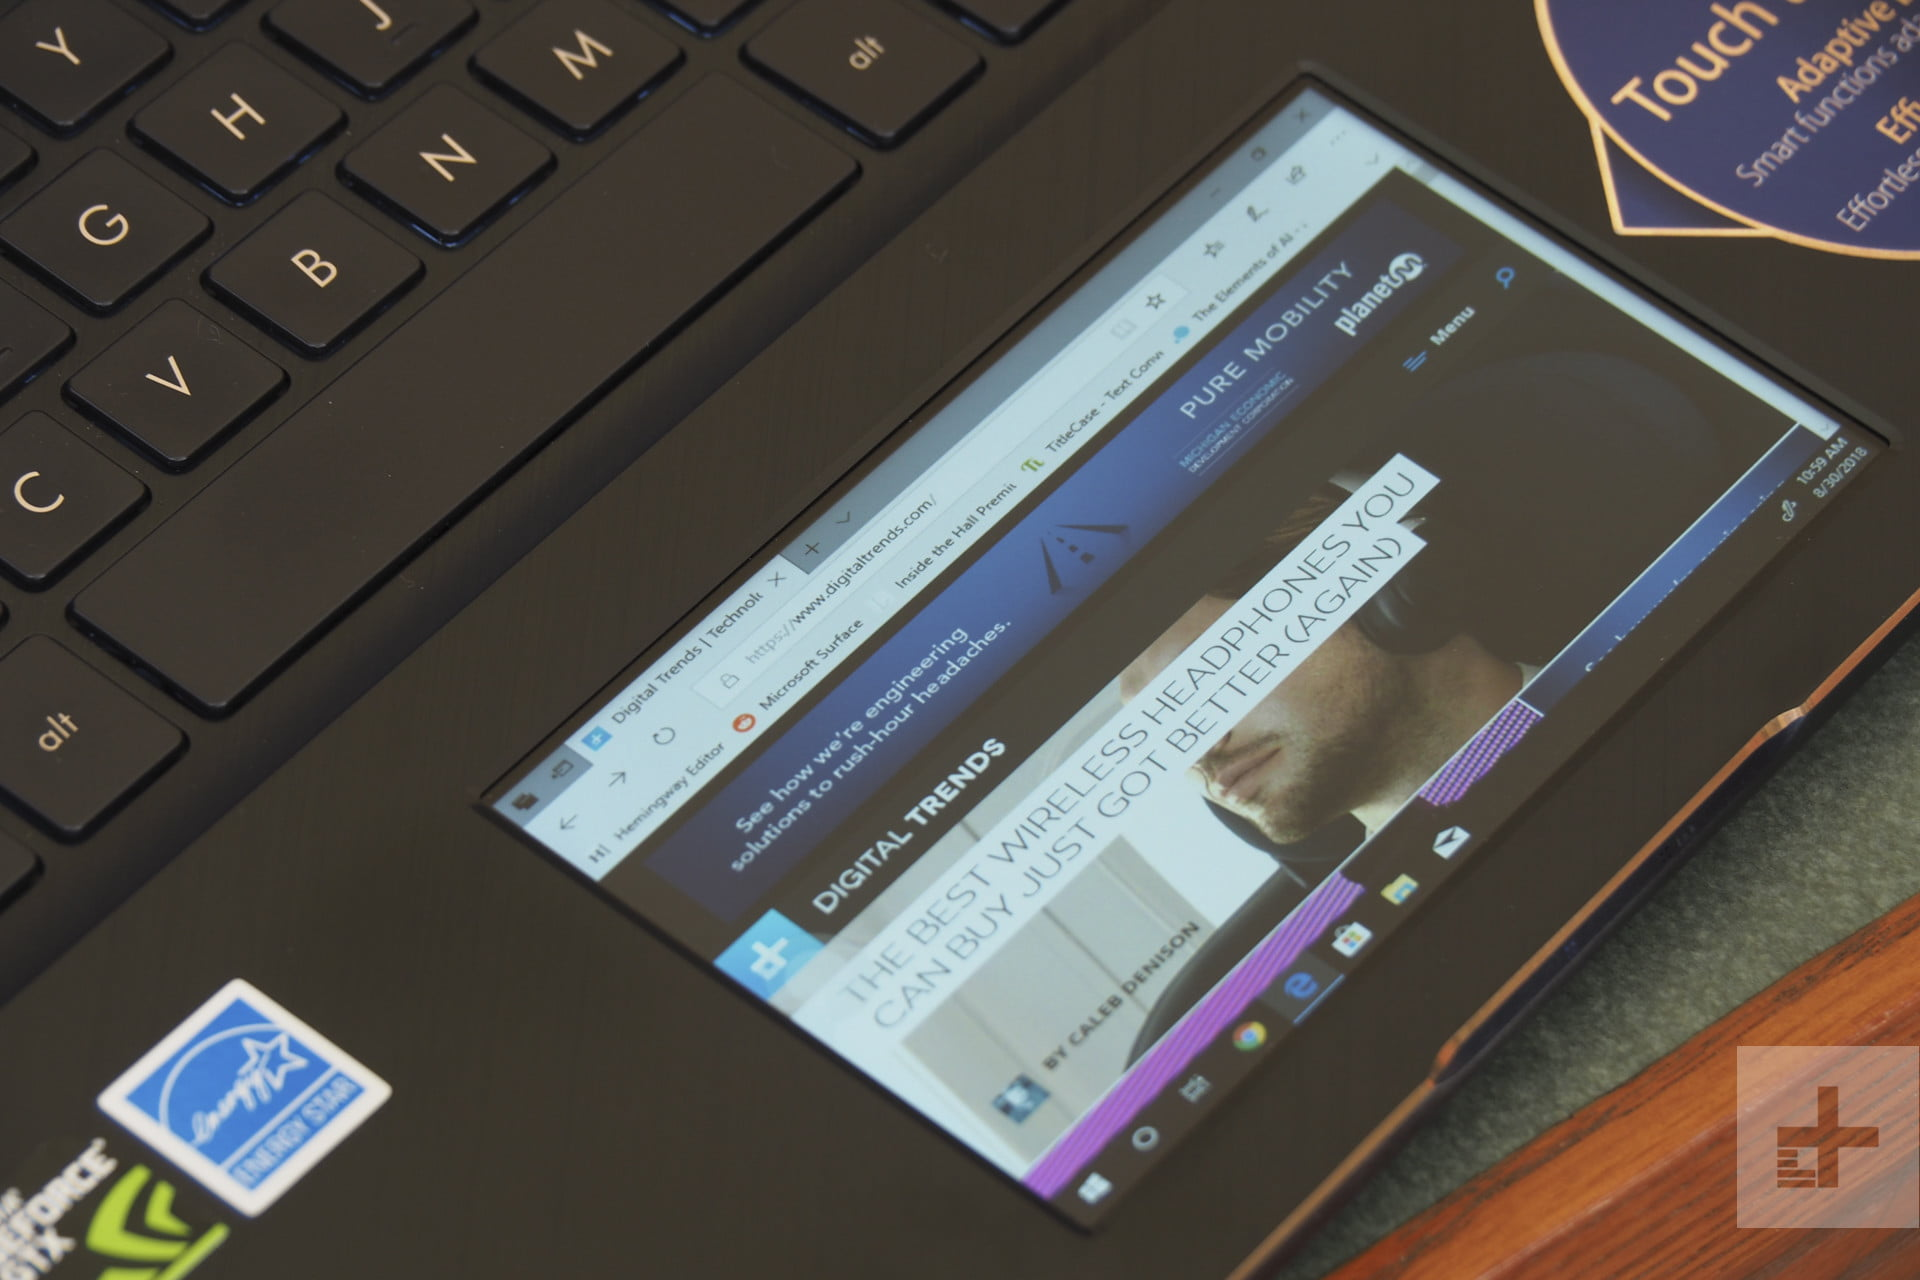 The Asus ScreenPad: Is It the Future of Computing or Just a